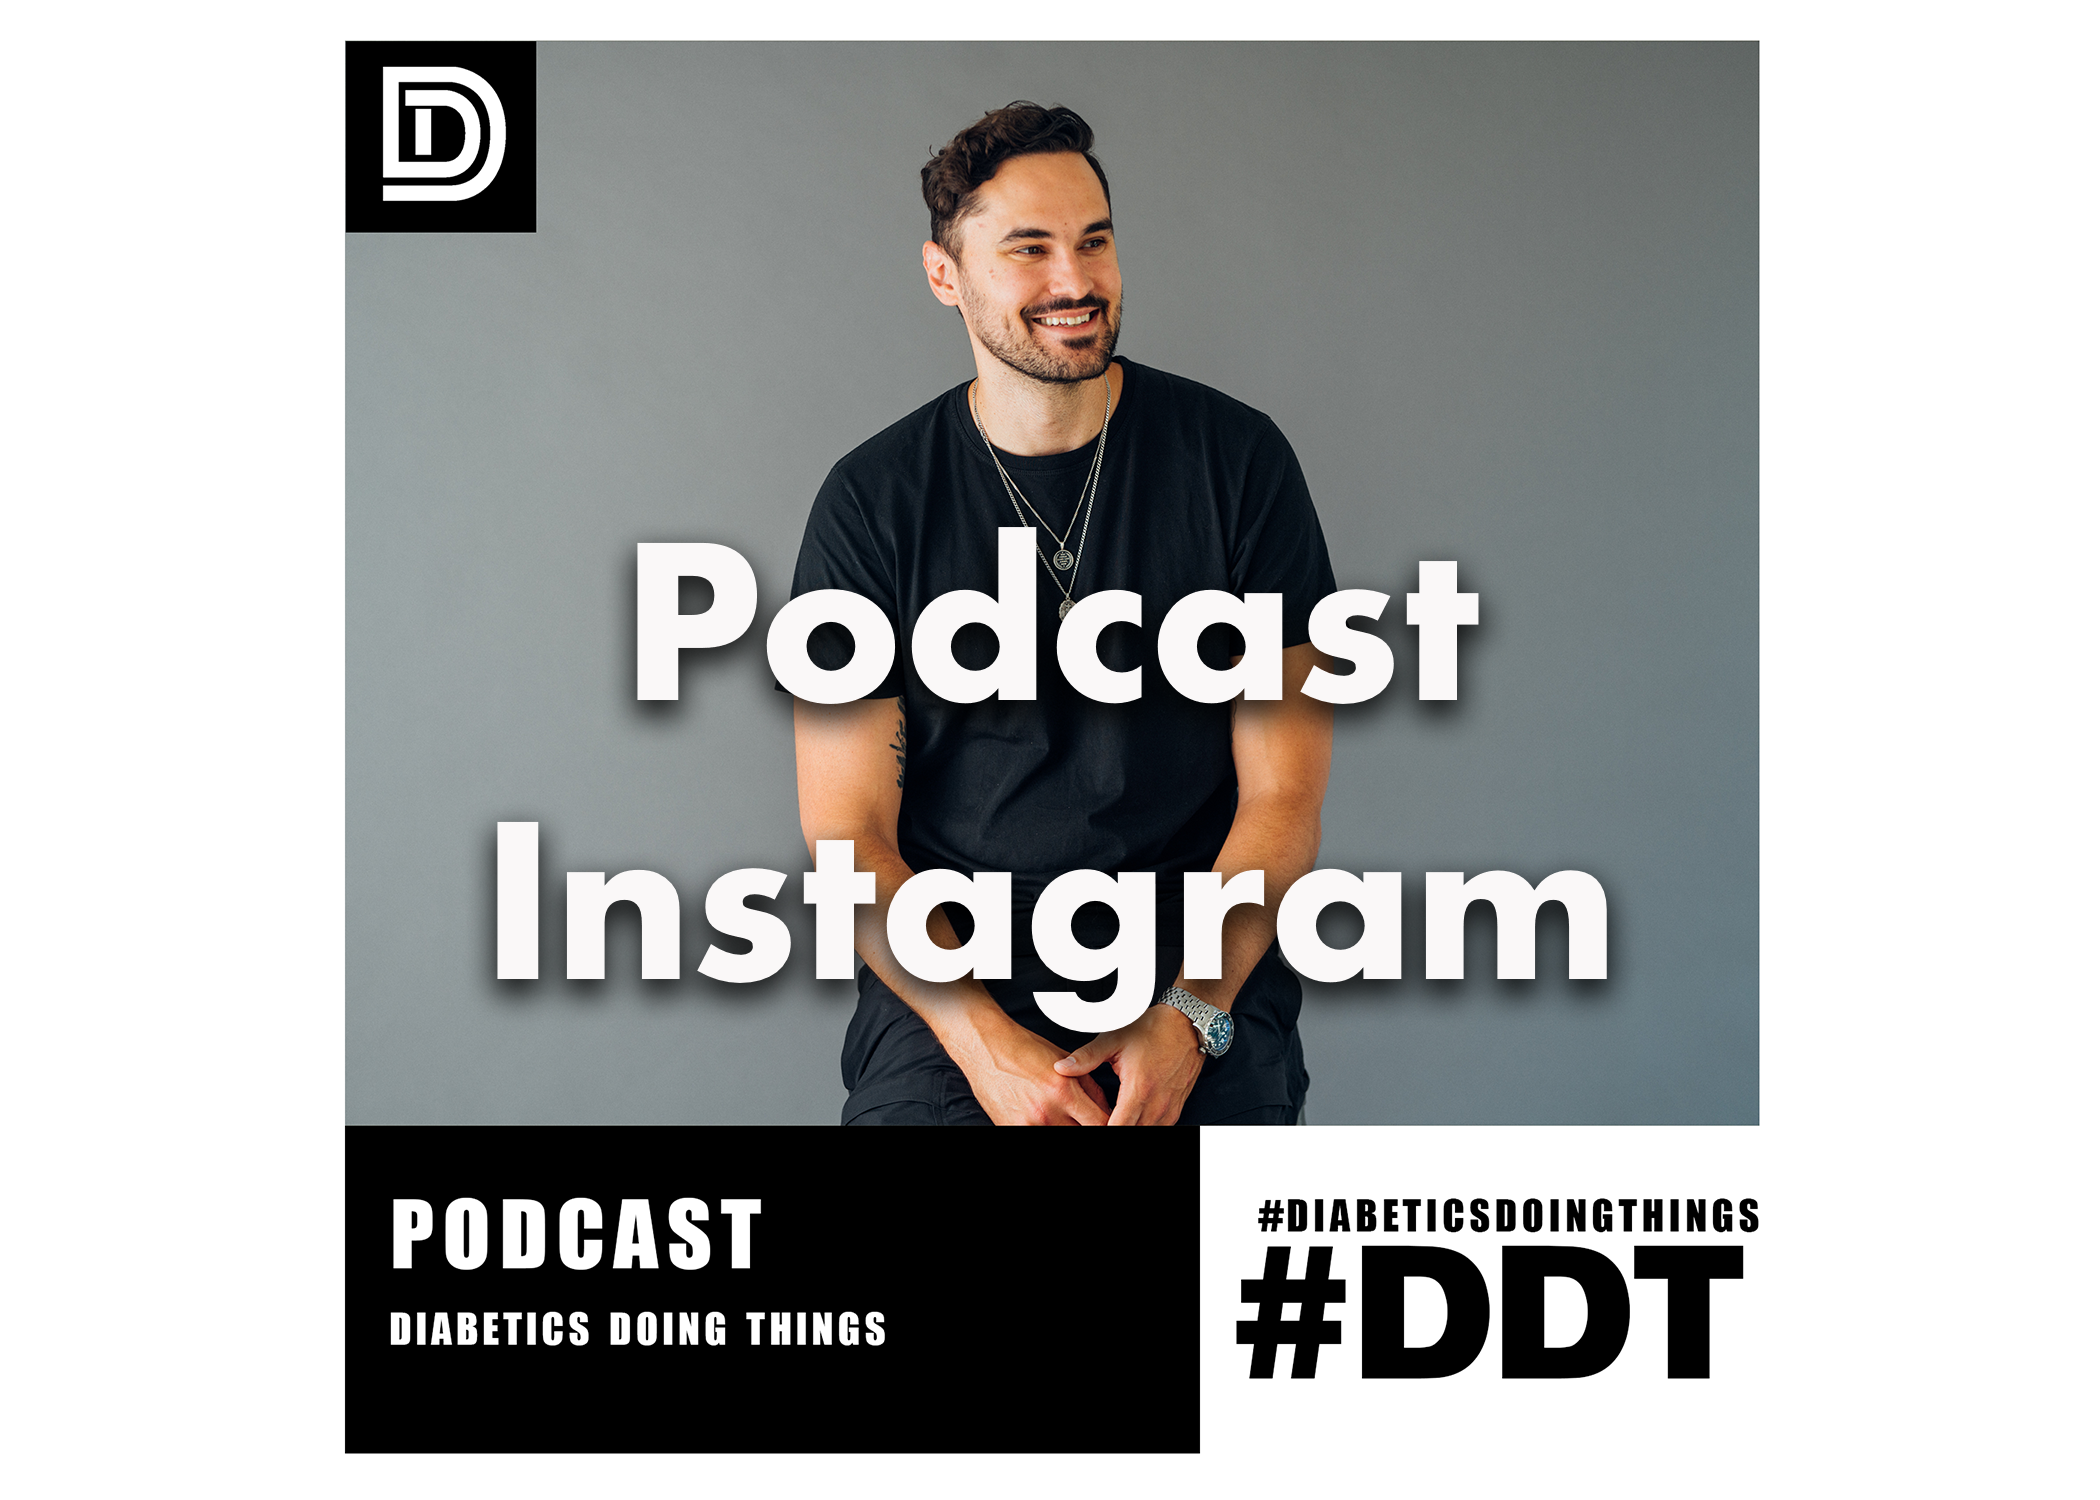 podcast instagram.png